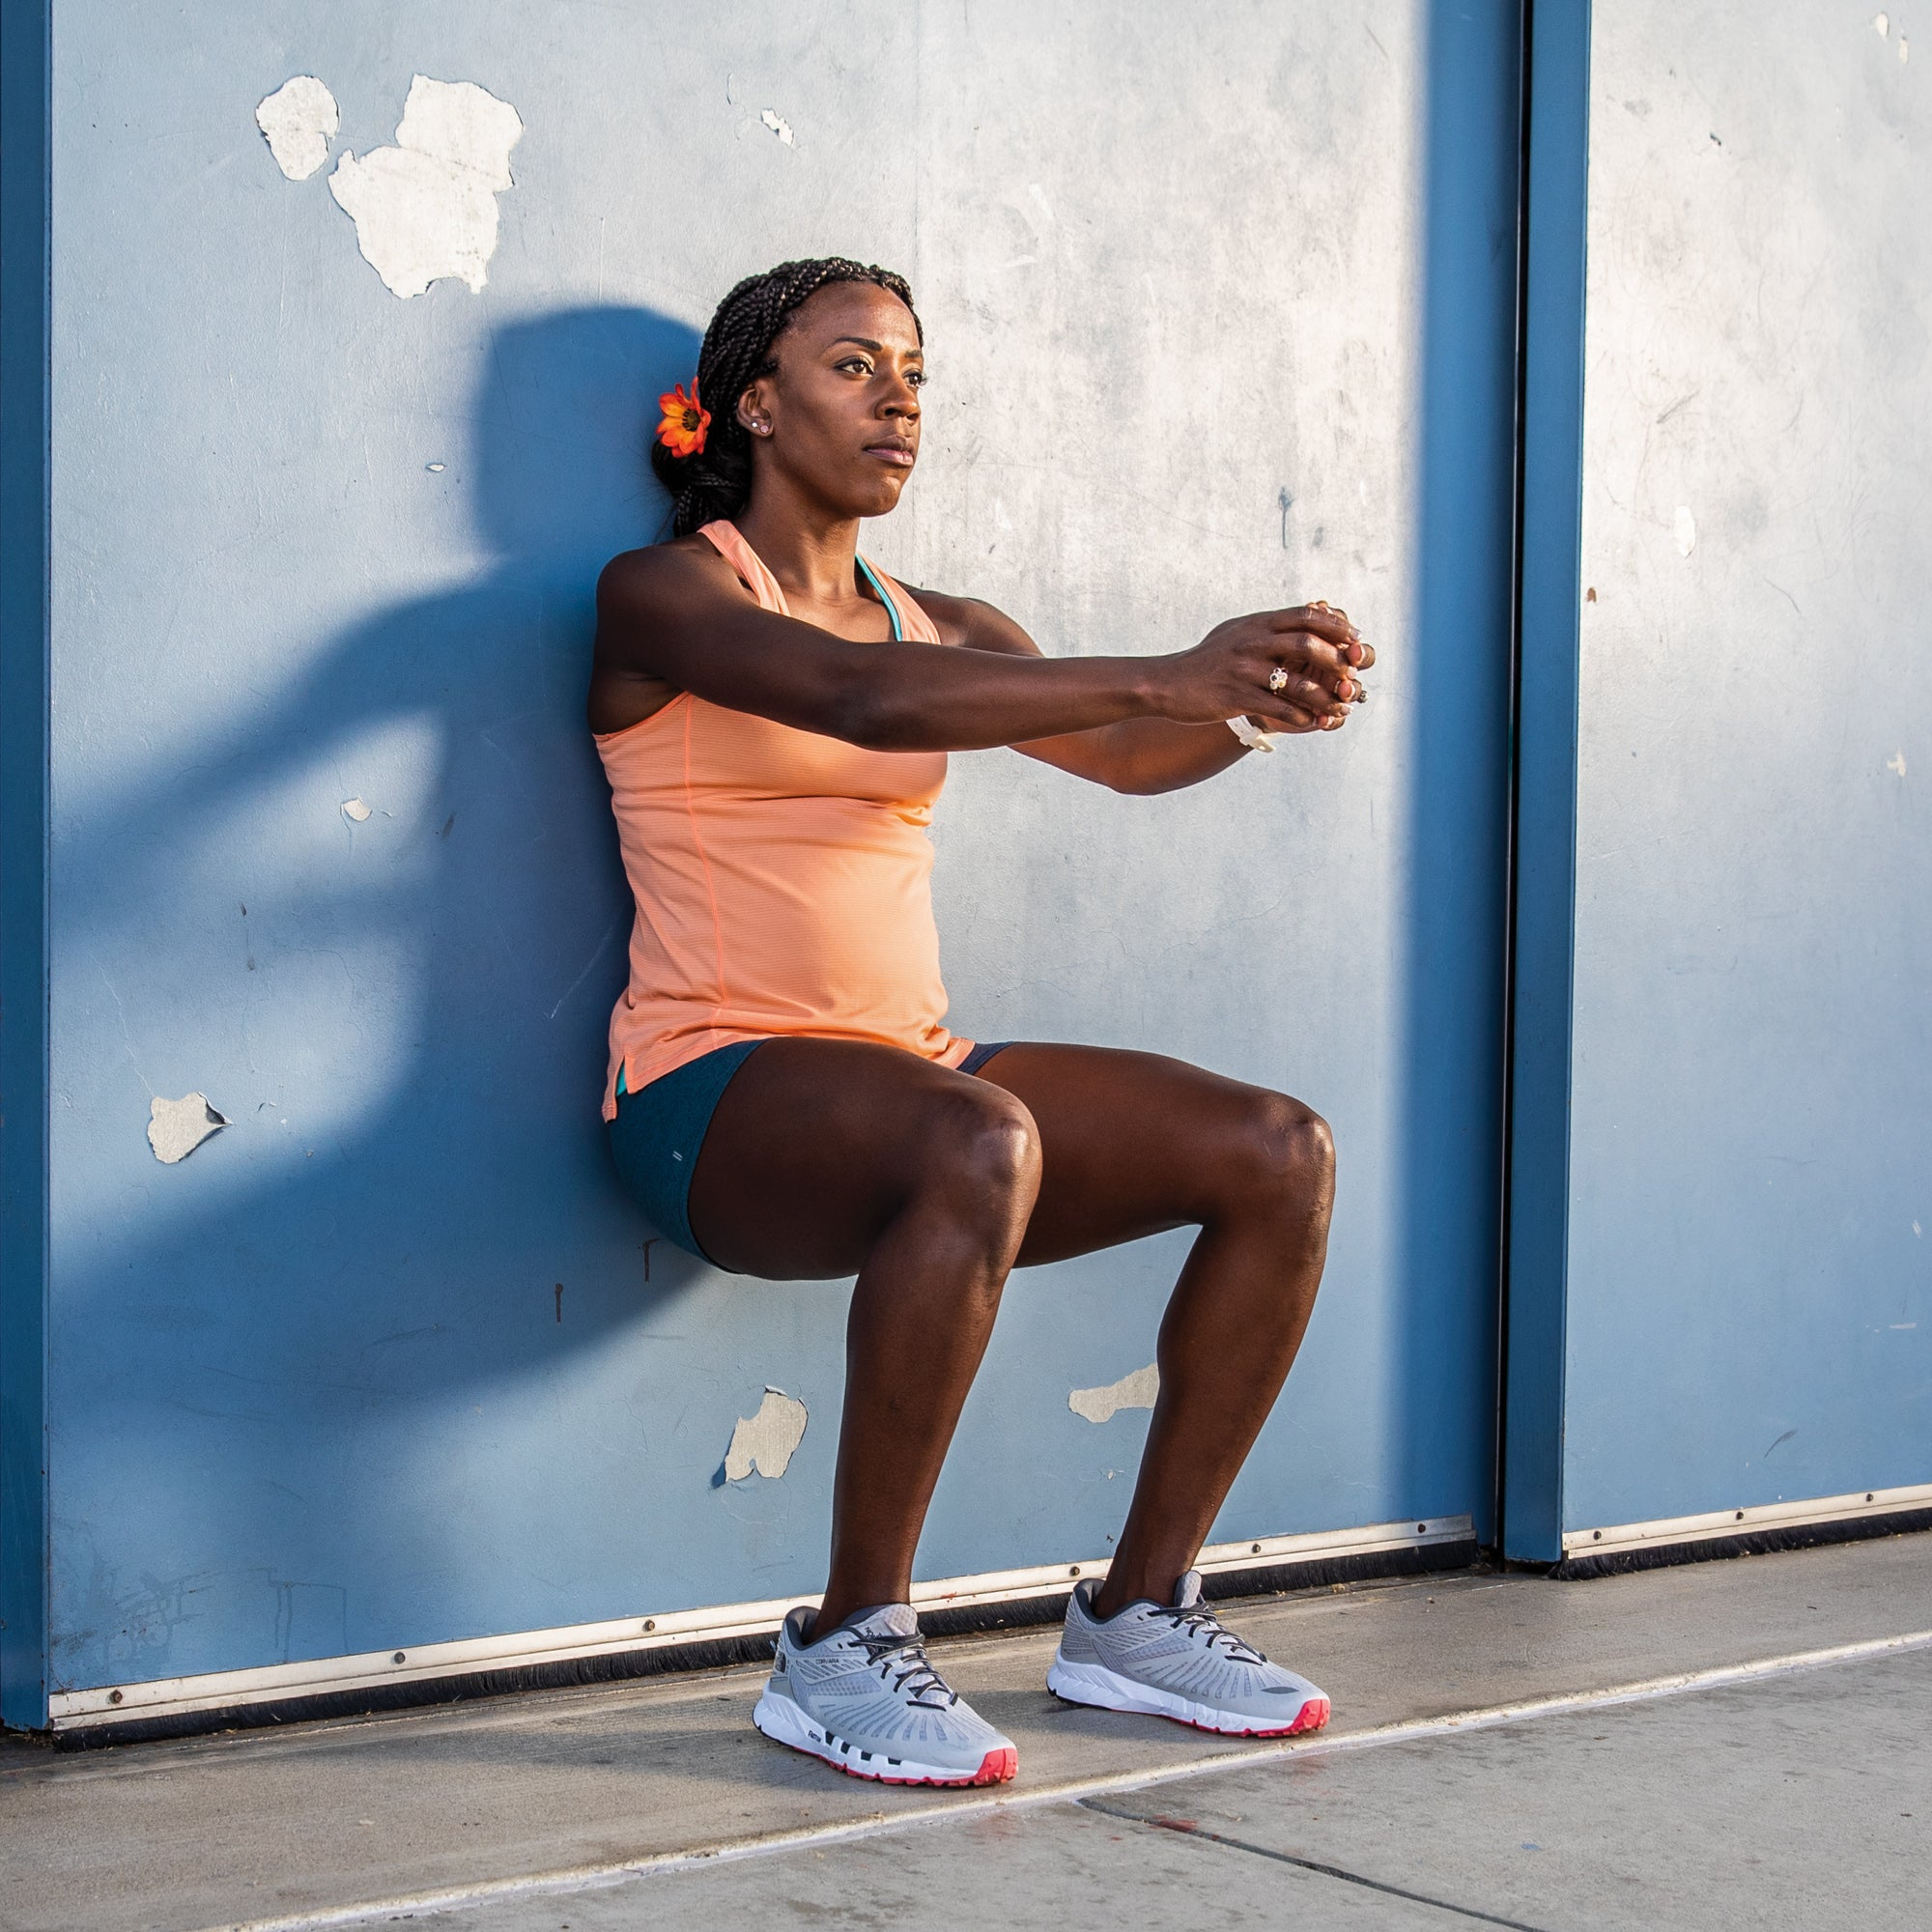 Alysia Montano demonstrating a wall sit